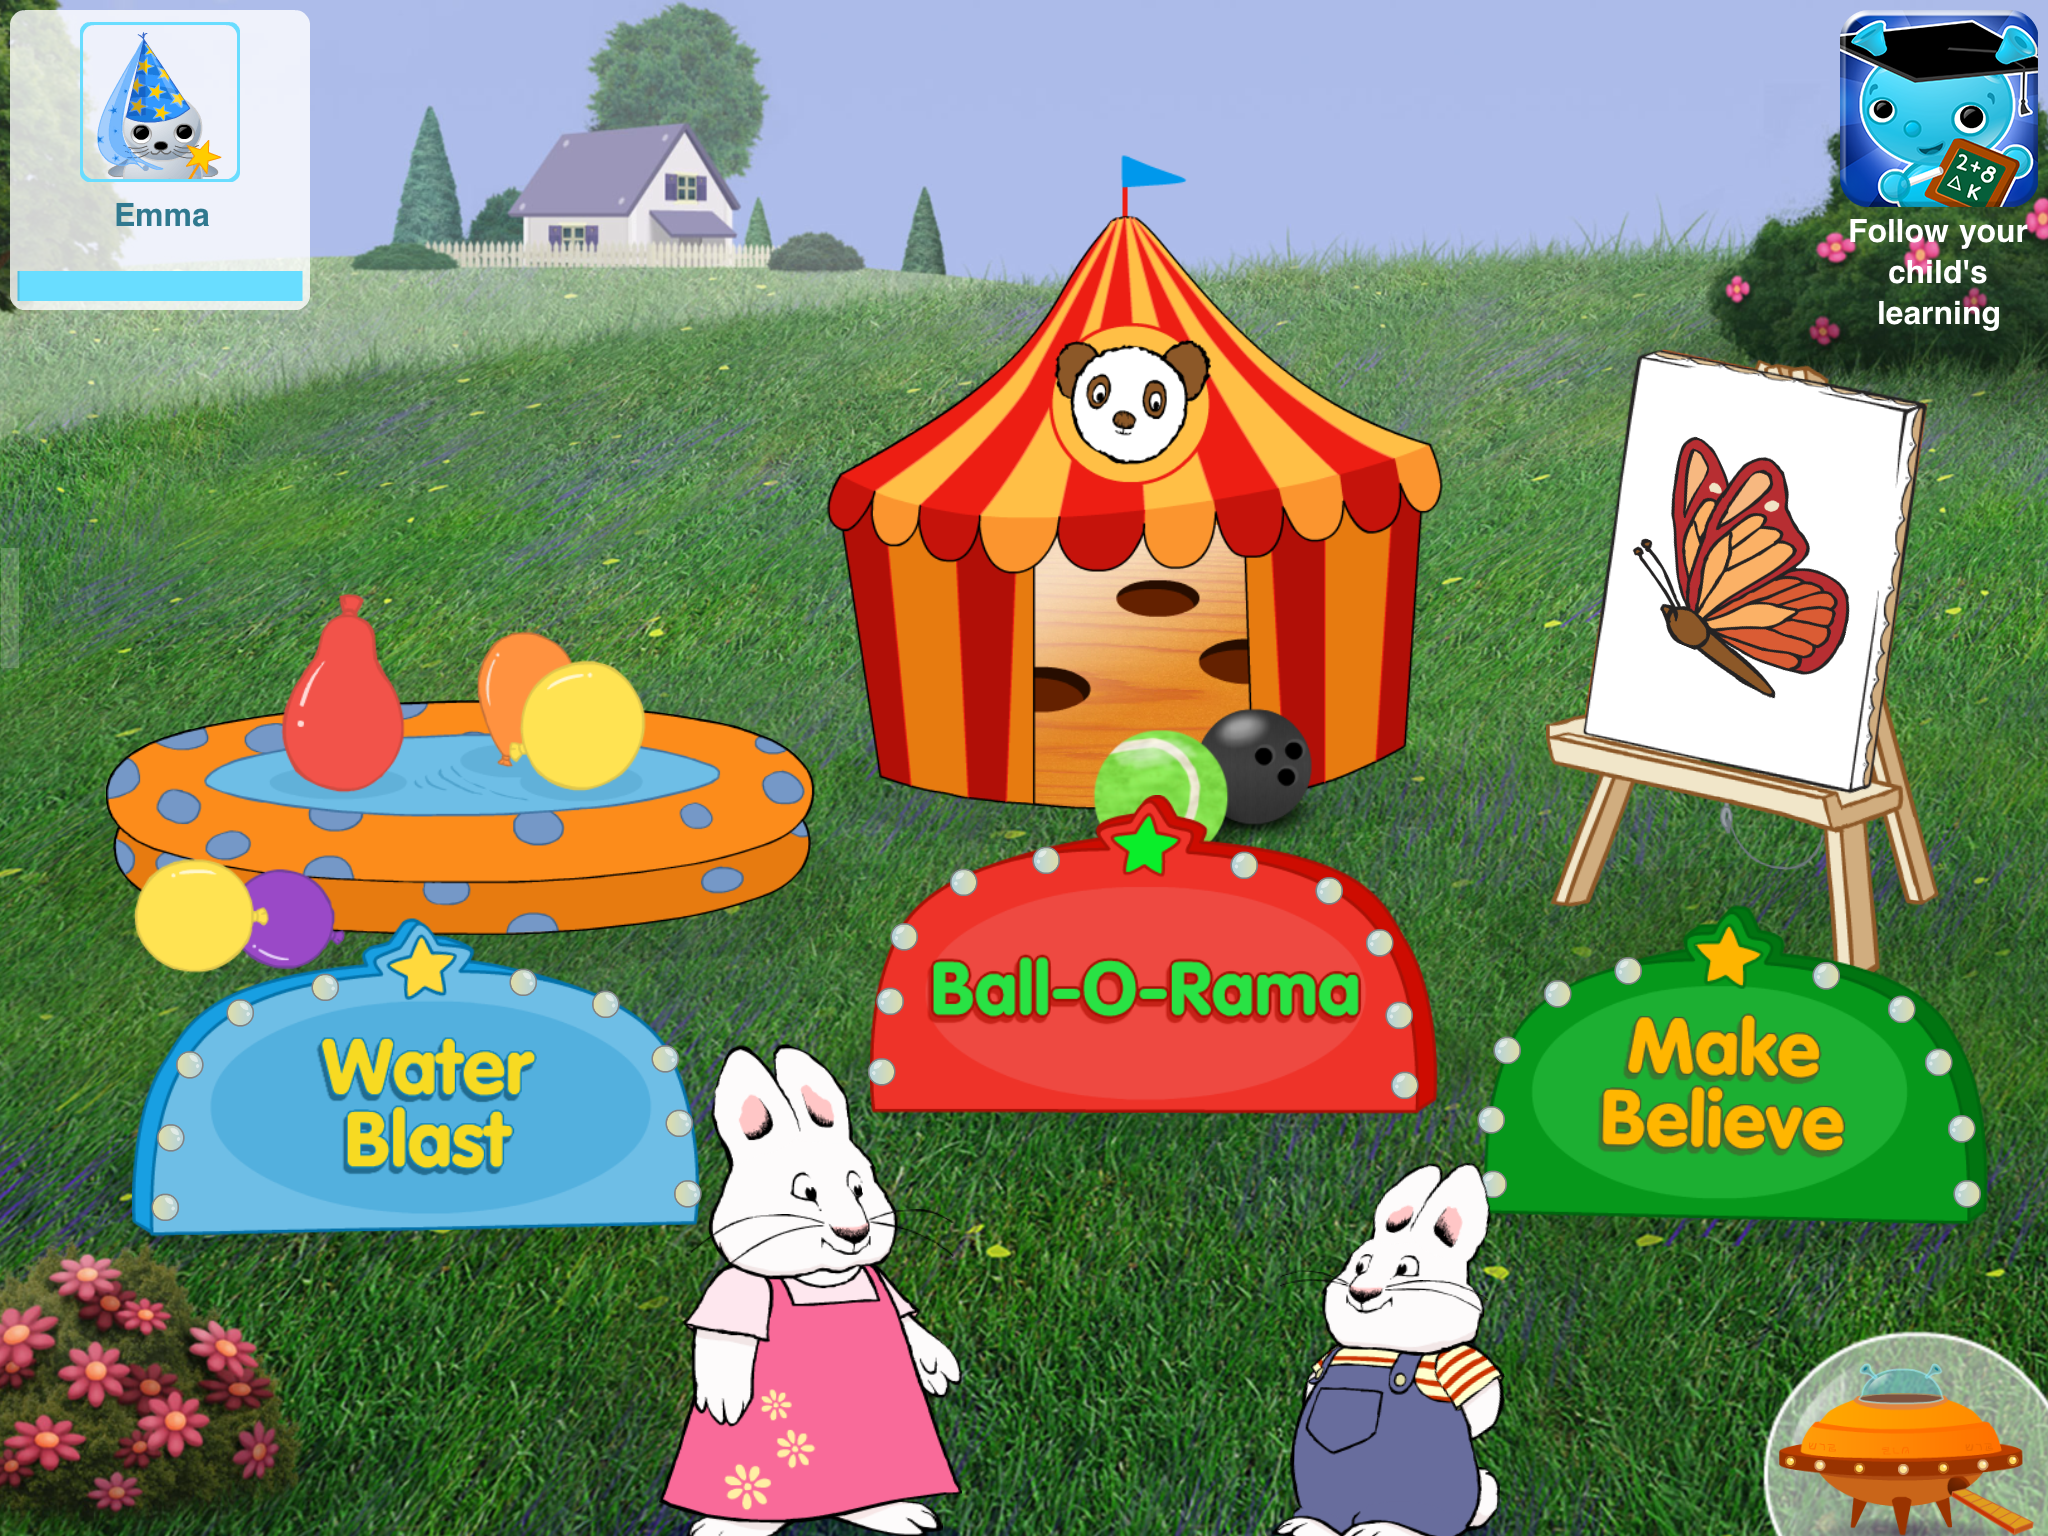 10 Fun & Educational iPad Games for Kids under 10 ClassTag Blog